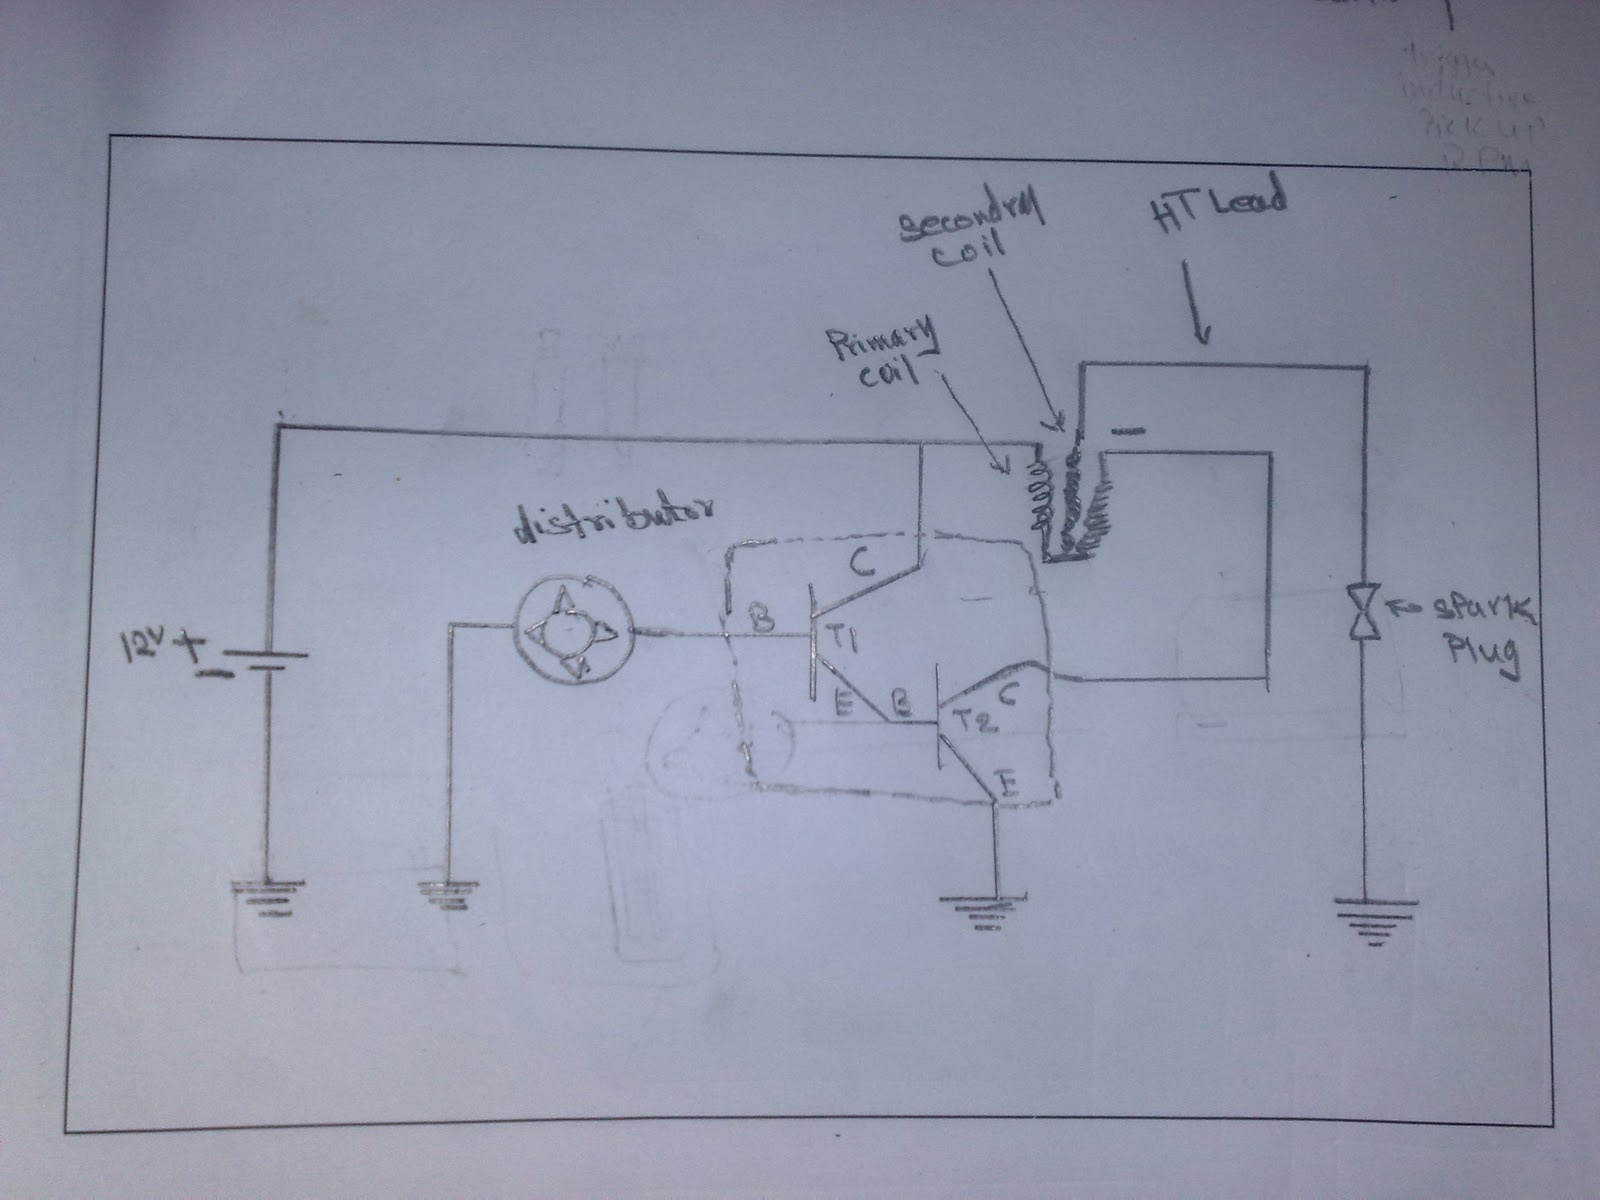 hight resolution of group engine diagram wiring library group engine diagram